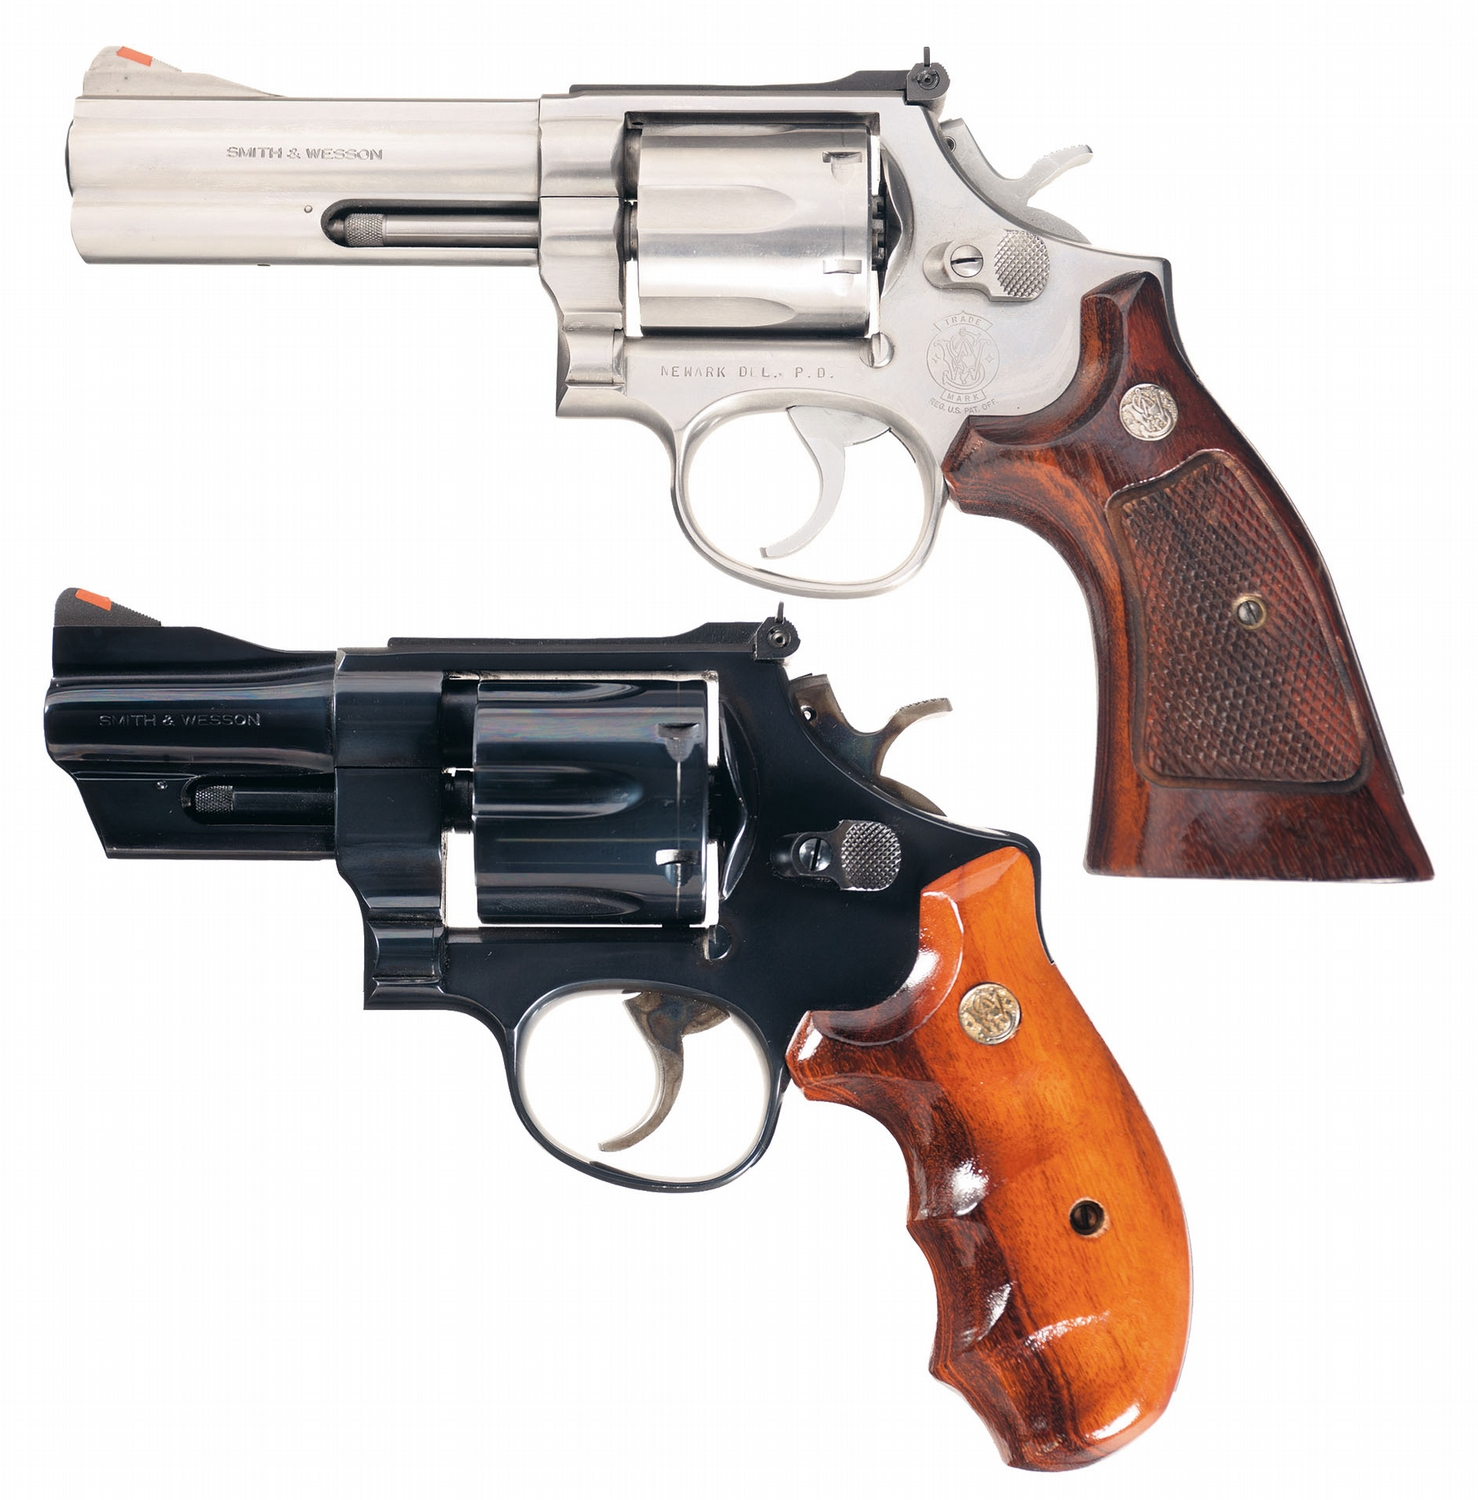 Two Smith & Wesson Revolvers -A) Smith & Wesson Model 686 Double ...